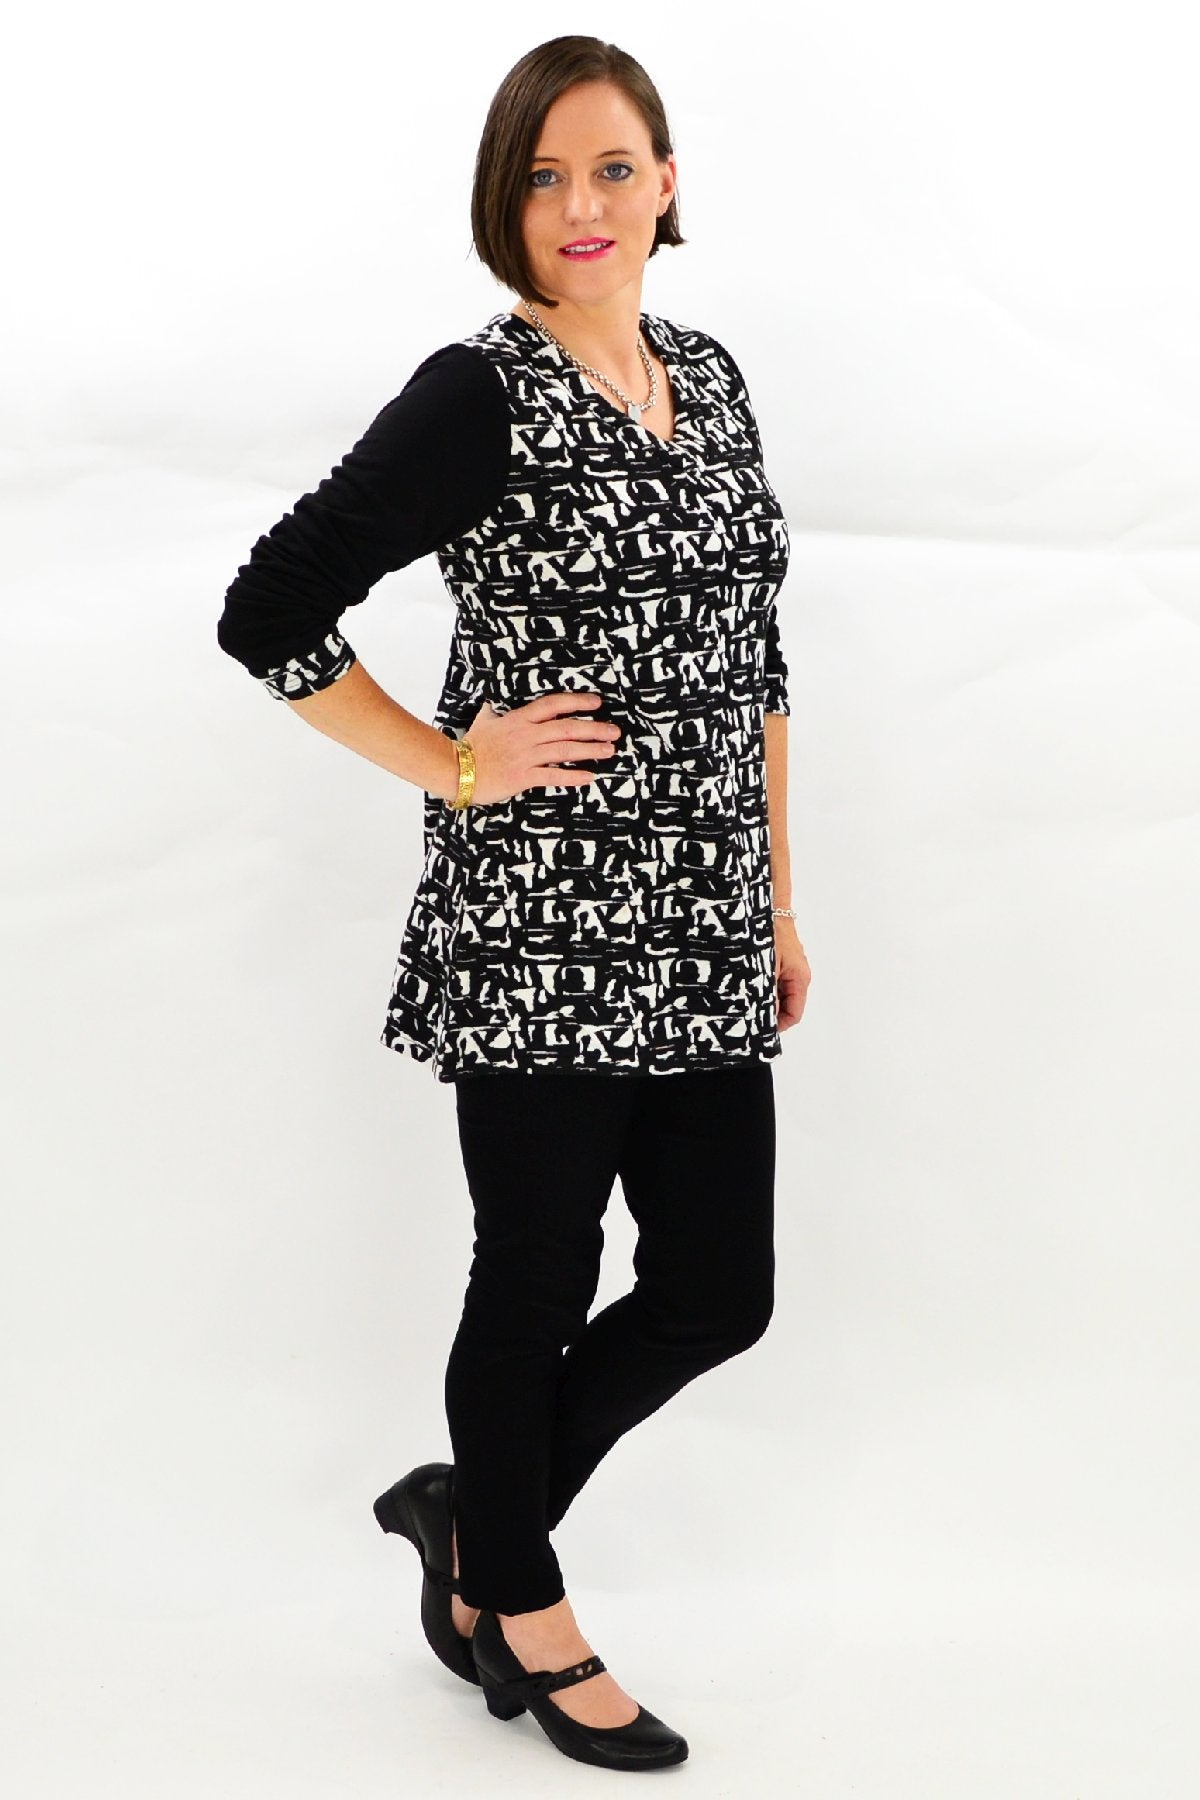 Jodie Tunic Top | I Love Tunics | Tunic Tops | Tunic | Tunic Dresses  | womens clothing online